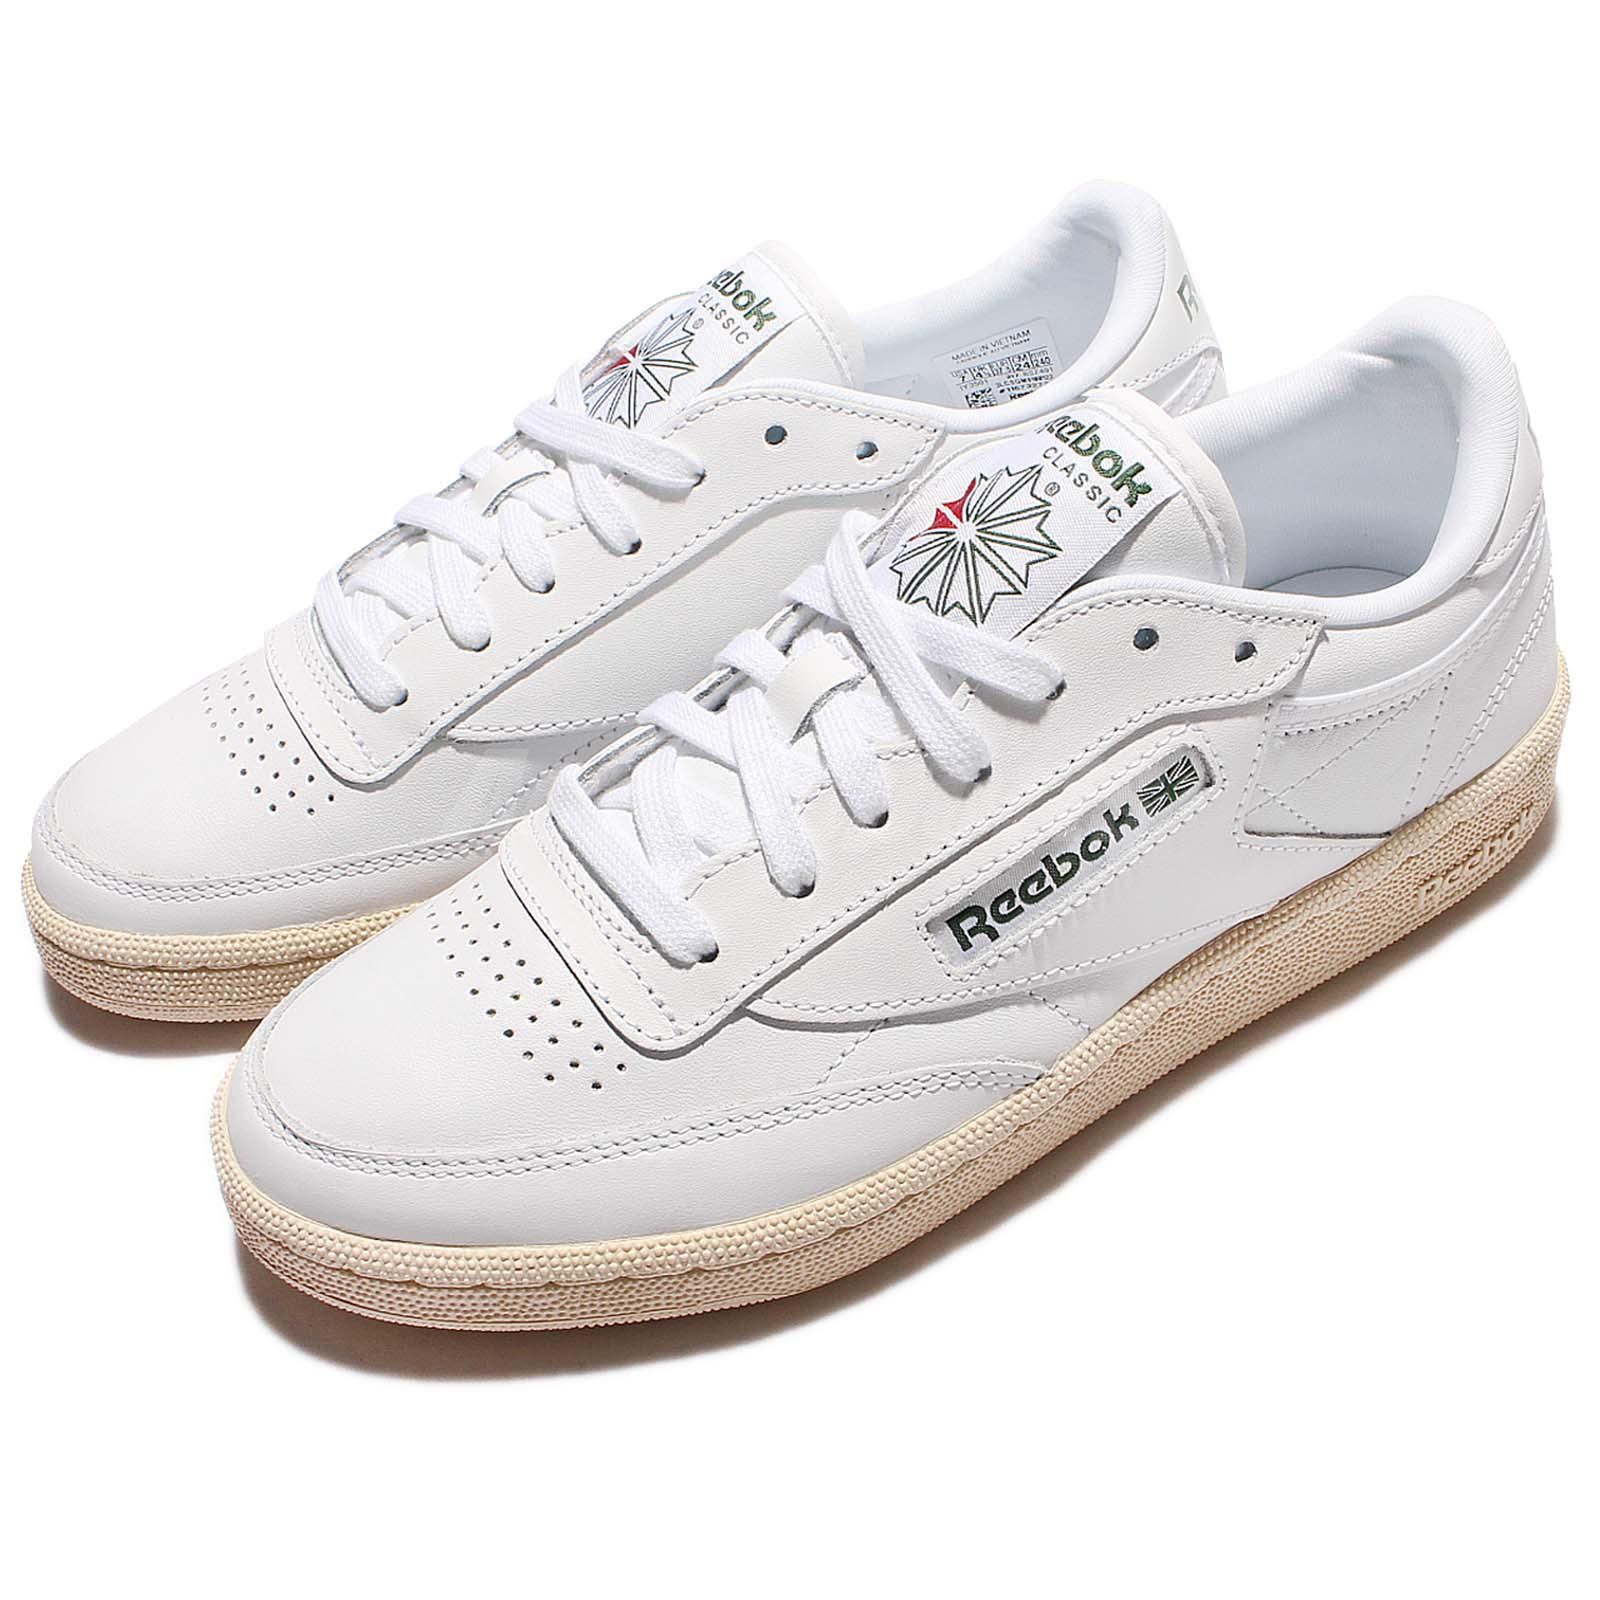 reebok club c 85 su white green leather vintage classic. Black Bedroom Furniture Sets. Home Design Ideas